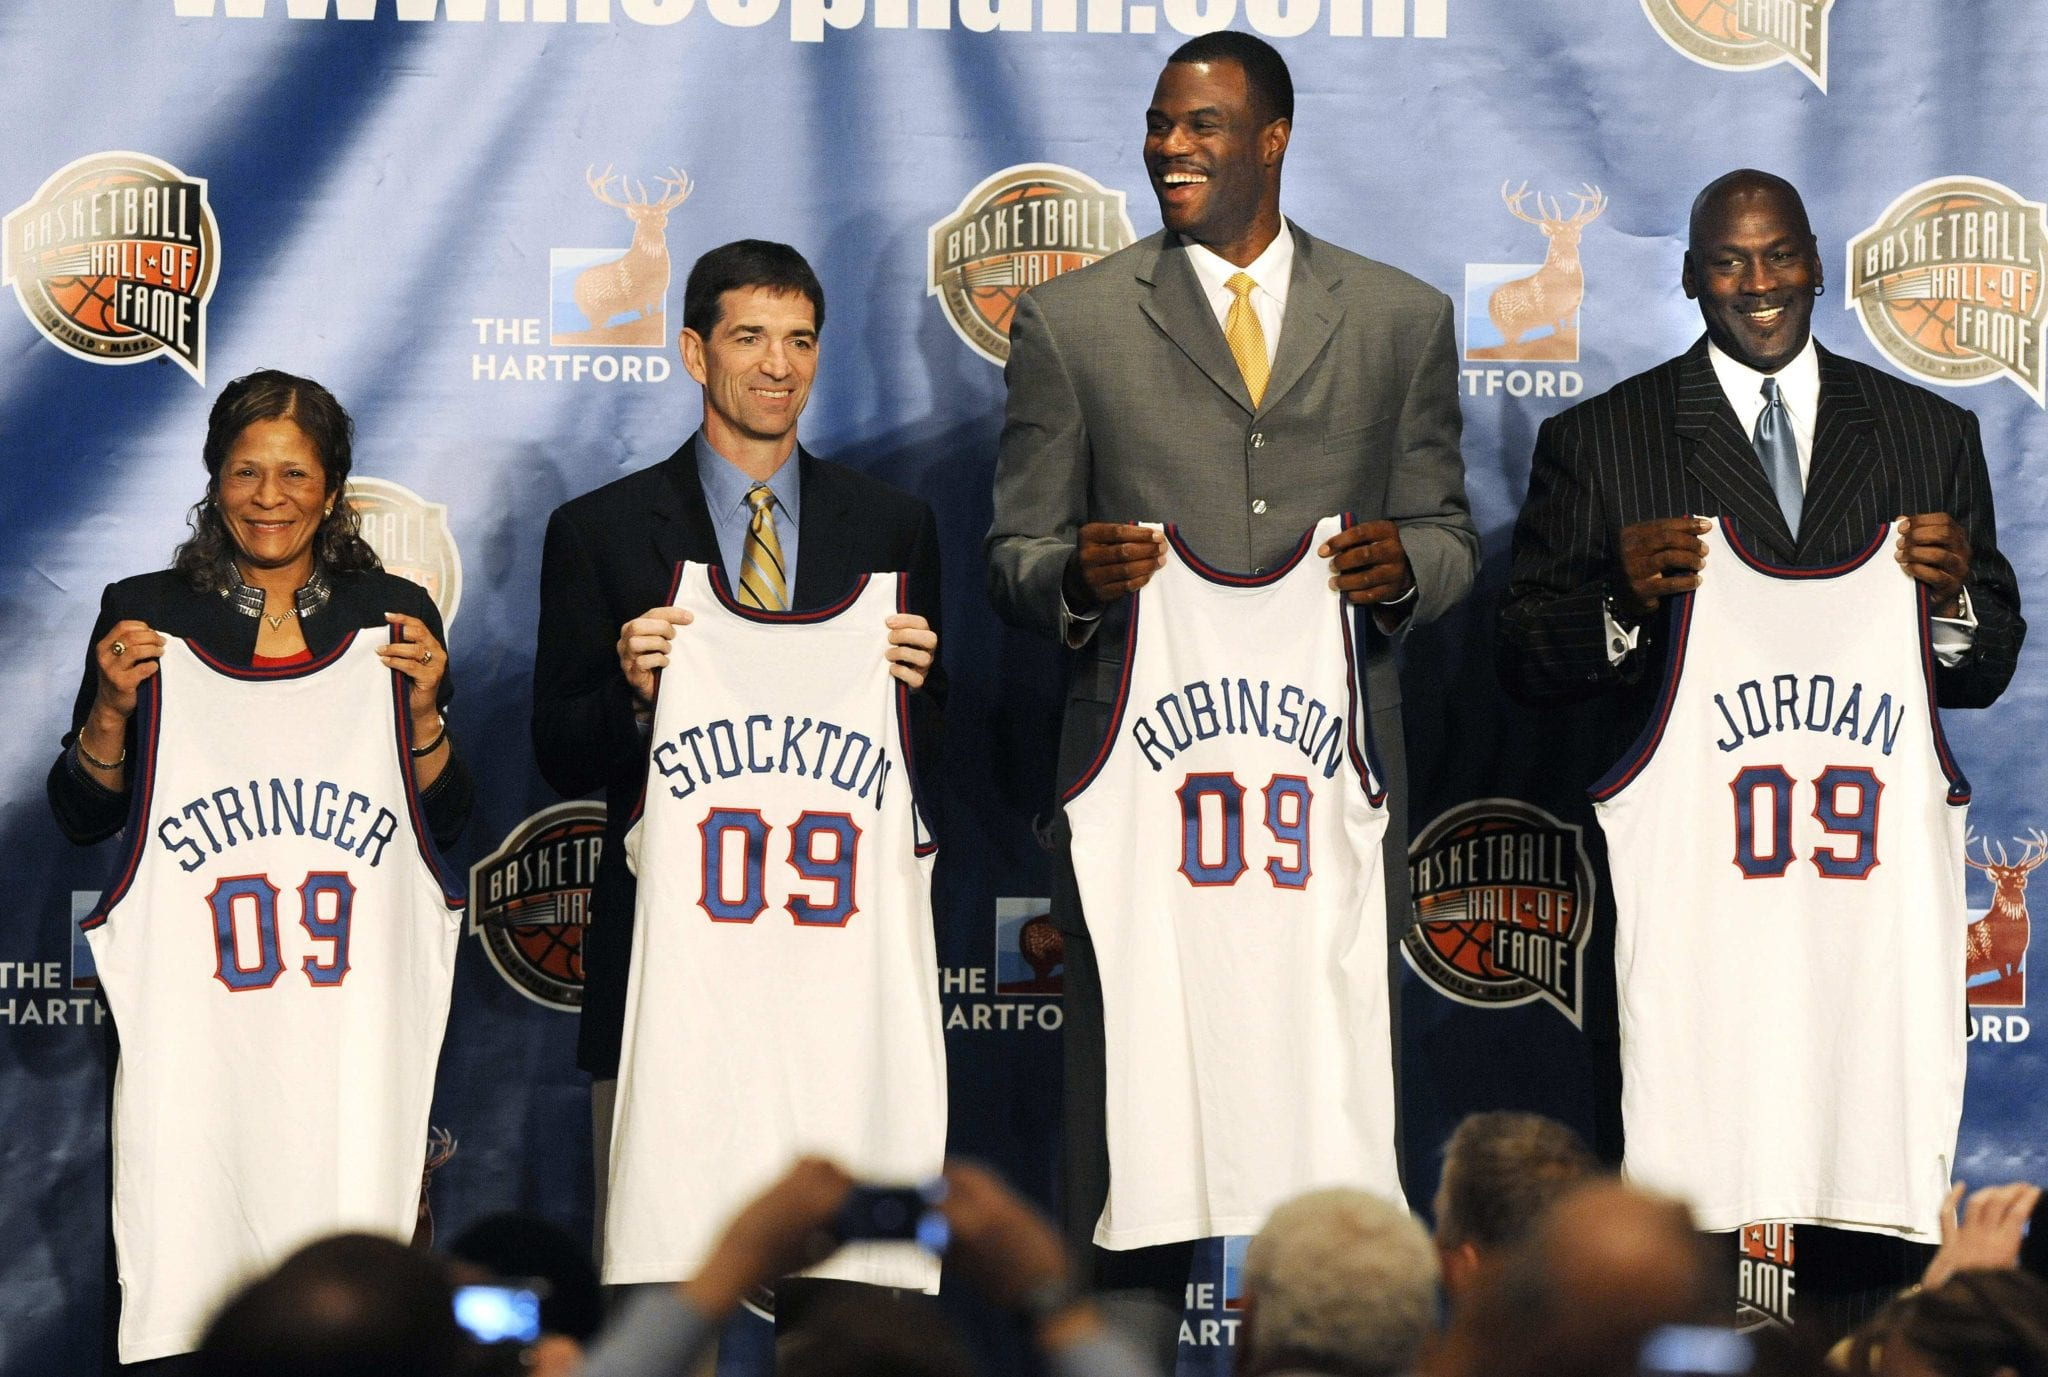 Flashback: Michael Jordan and The Basketball Hall of Fame's Class of 2009